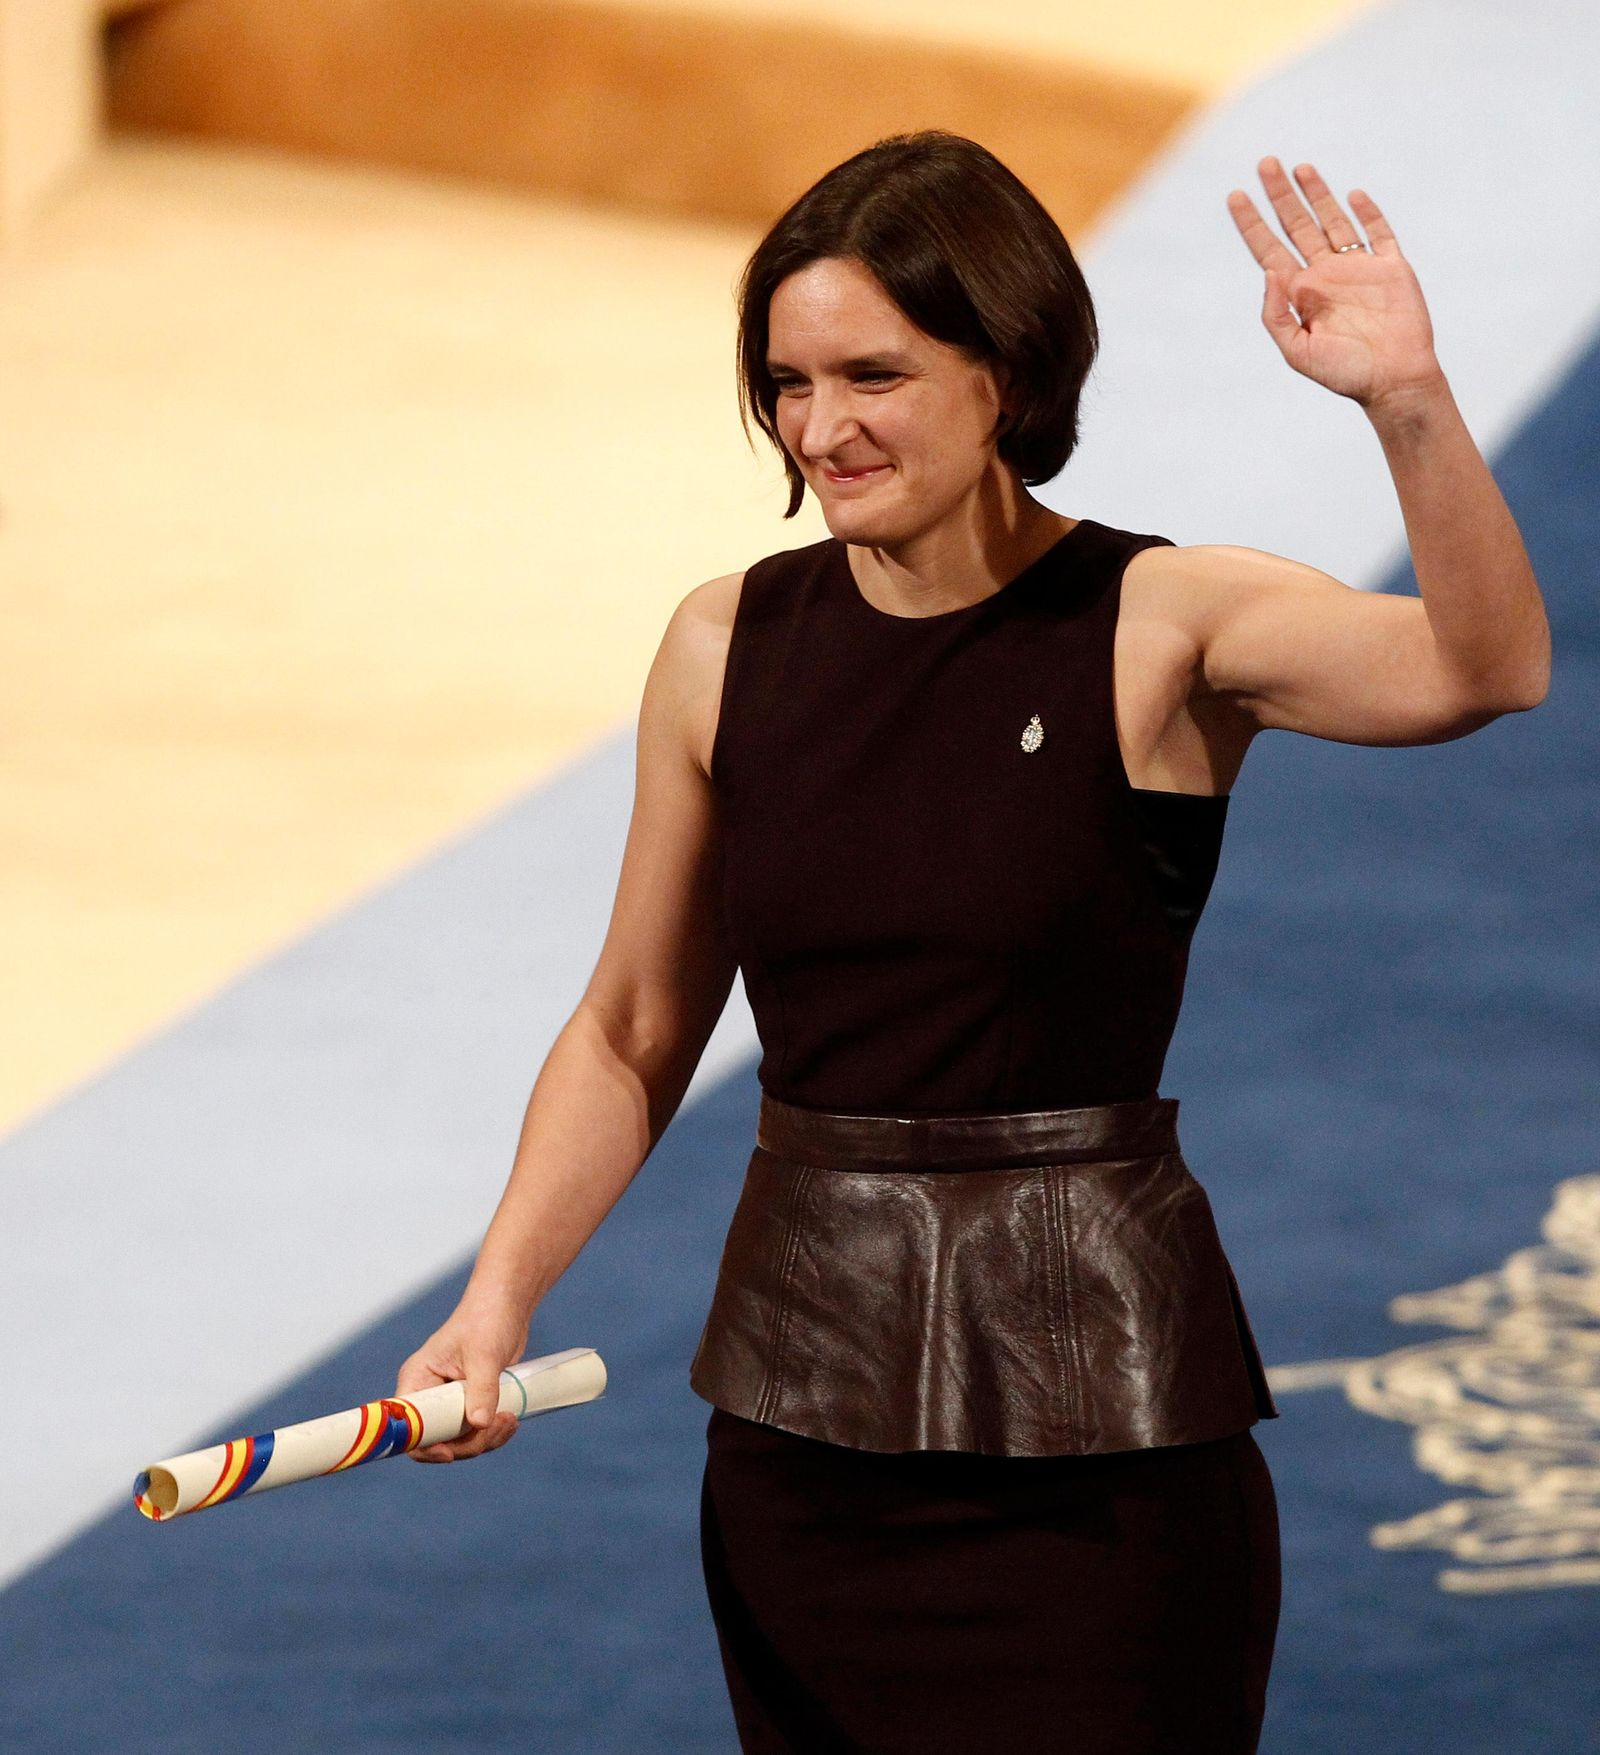 FILE - In this Friday Oct. 23, 2015 file photo, Esther Duflo of France waves after receiving the Princess of Asturias award for Social Sciences from Spain's King Felipe VI at a ceremony in Oviedo, northern Spain.{ } (AP Photo/Jose Vicente, File)